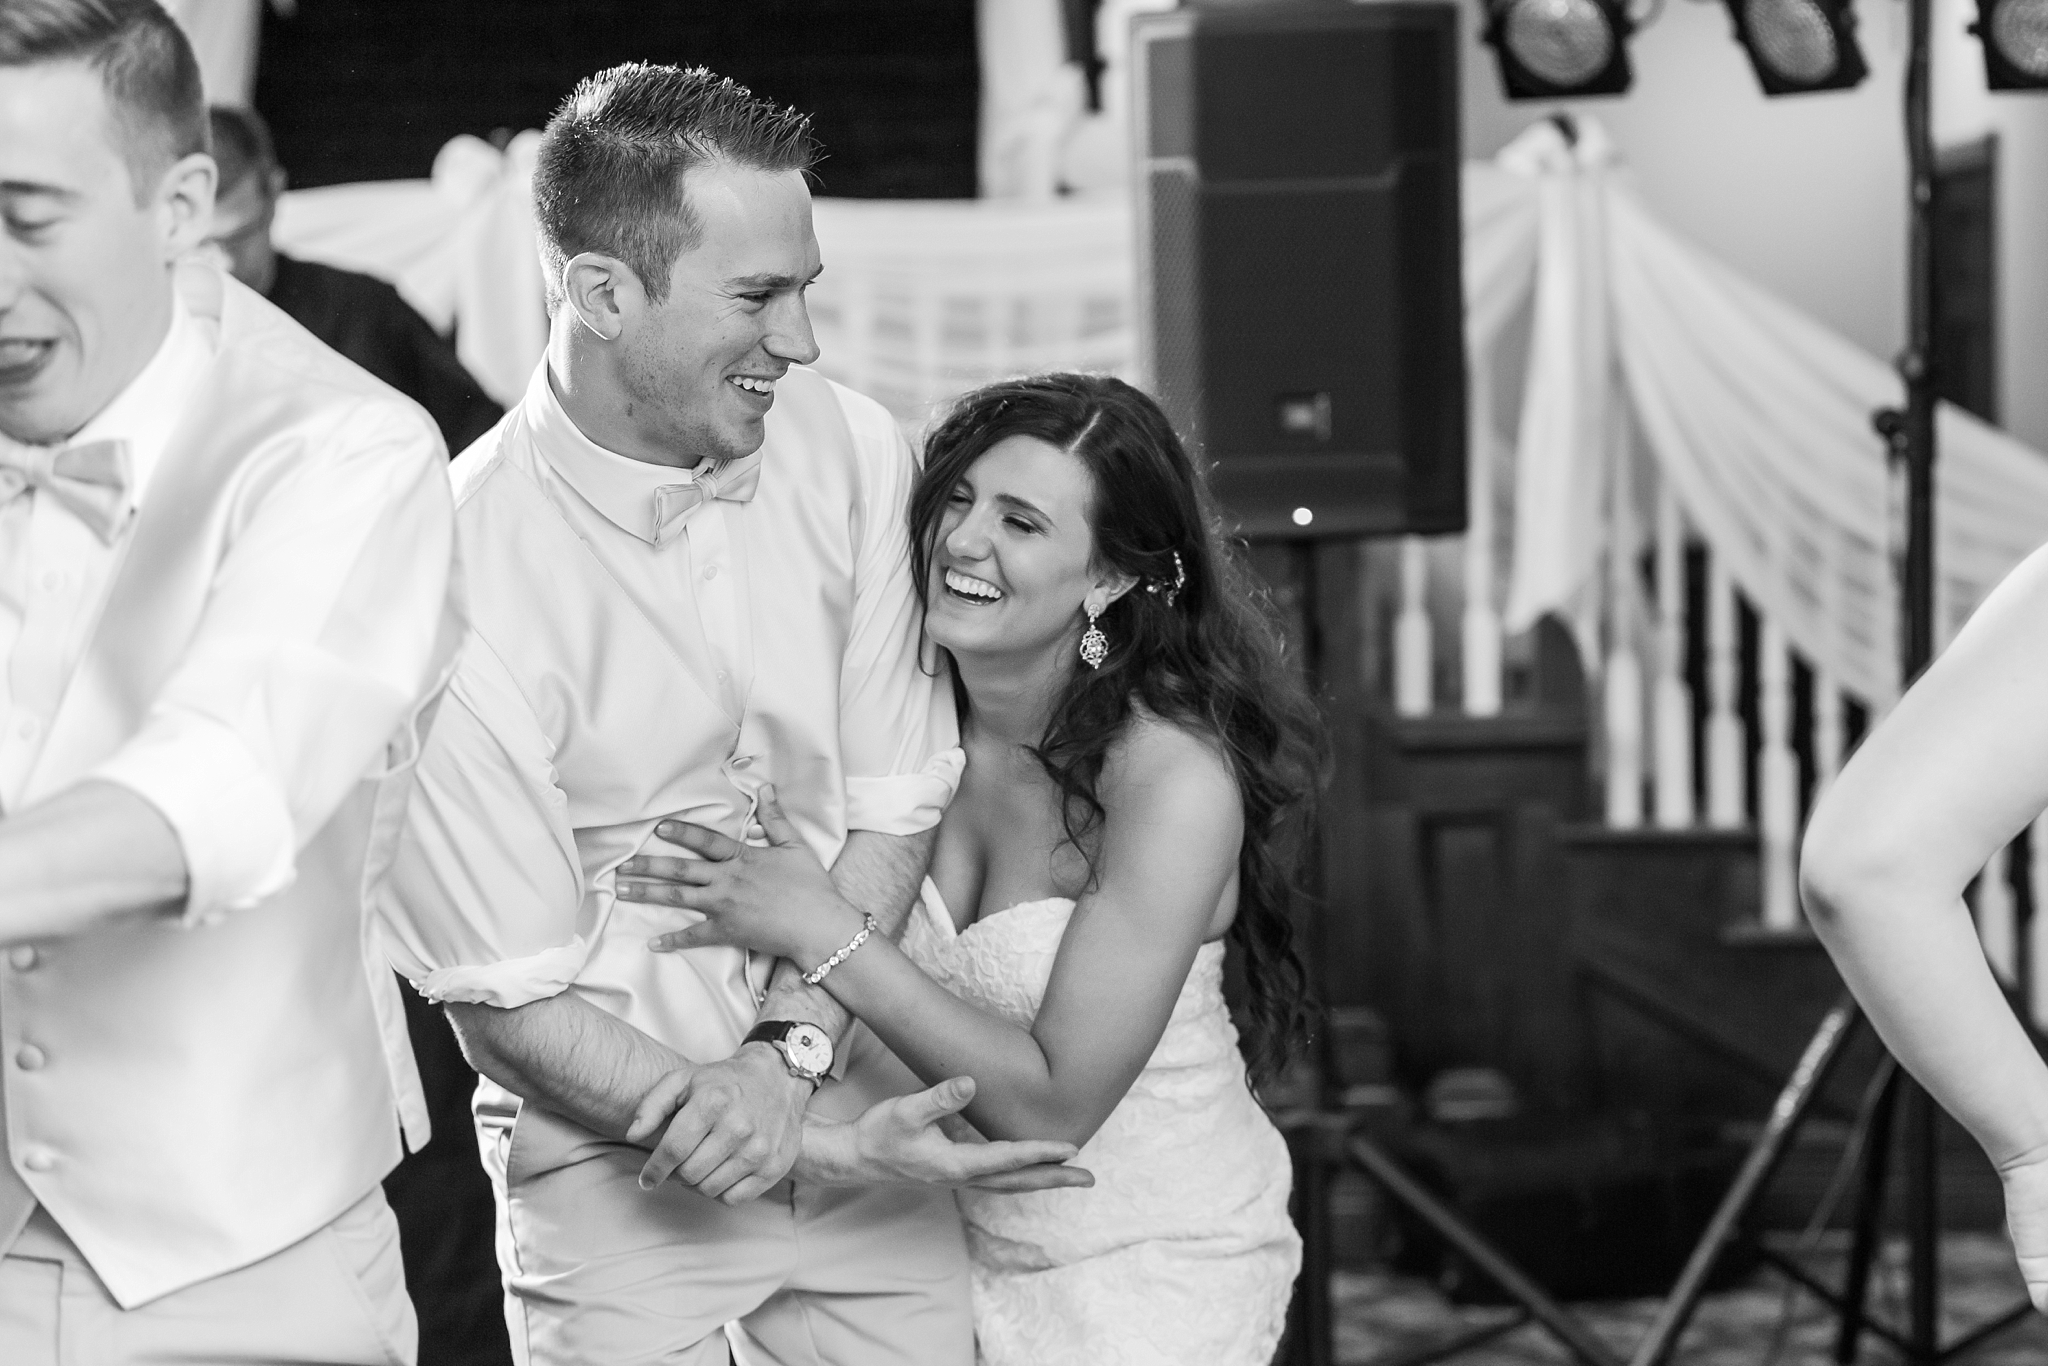 candid-timeless-wedding-photos-at-the-captains-club-in-grand-blanc-michigan-by-courtney-carolyn-photography_0113.jpg